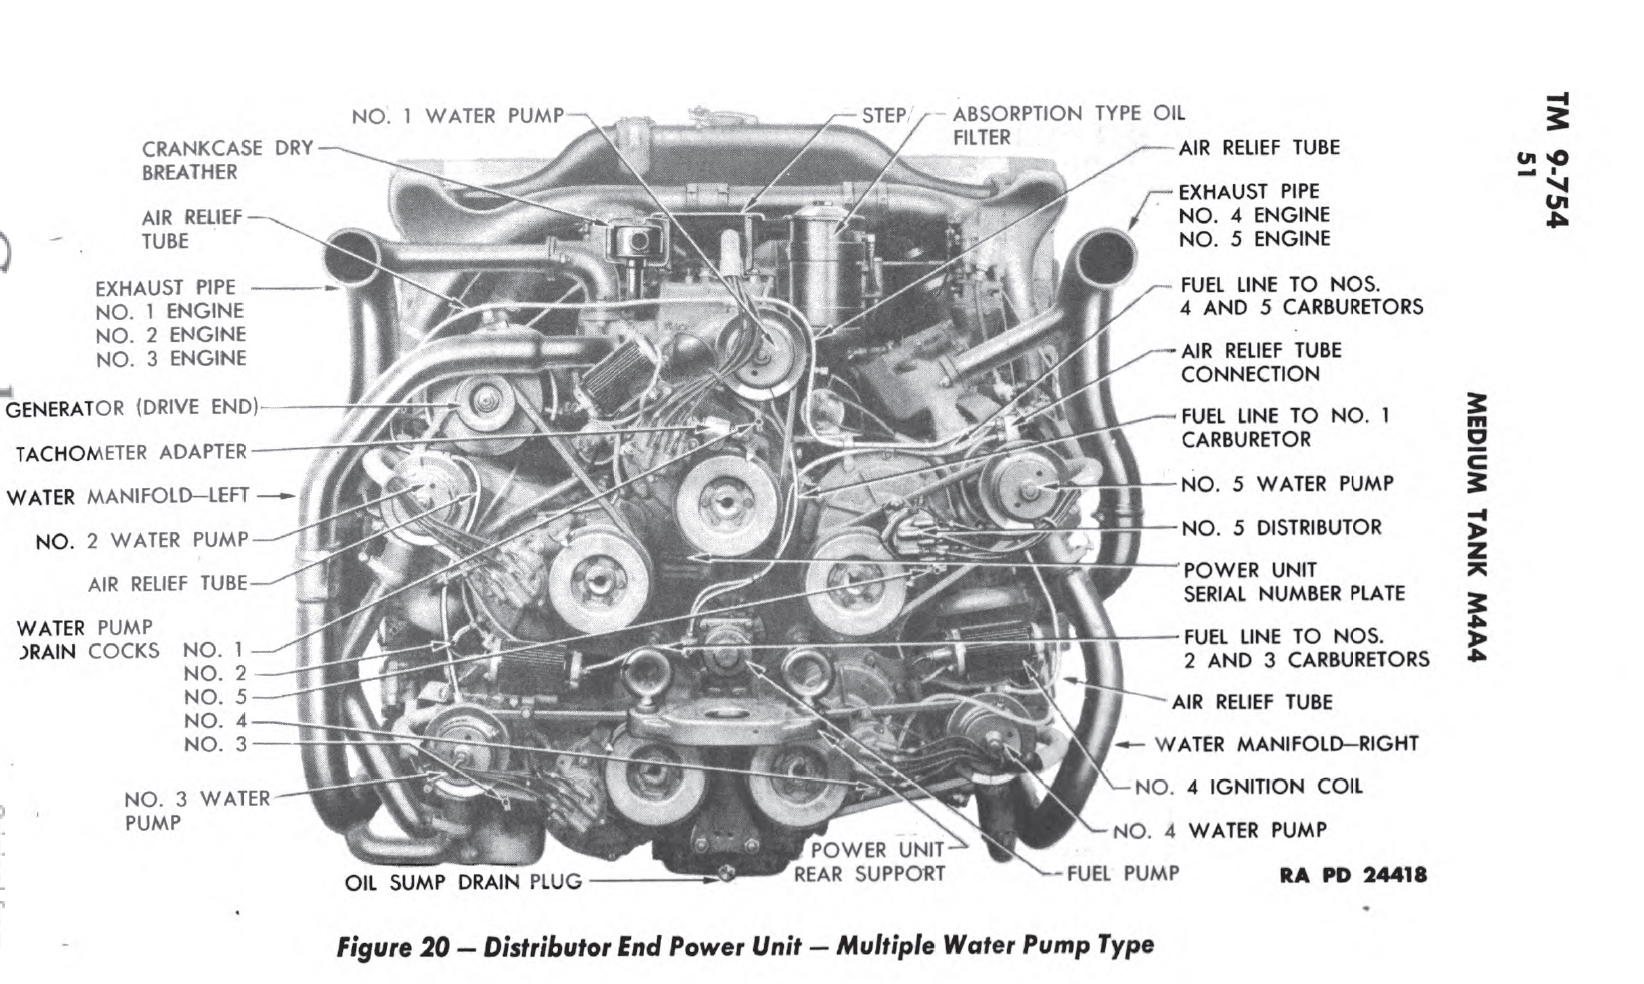 Engine Types For Tanks